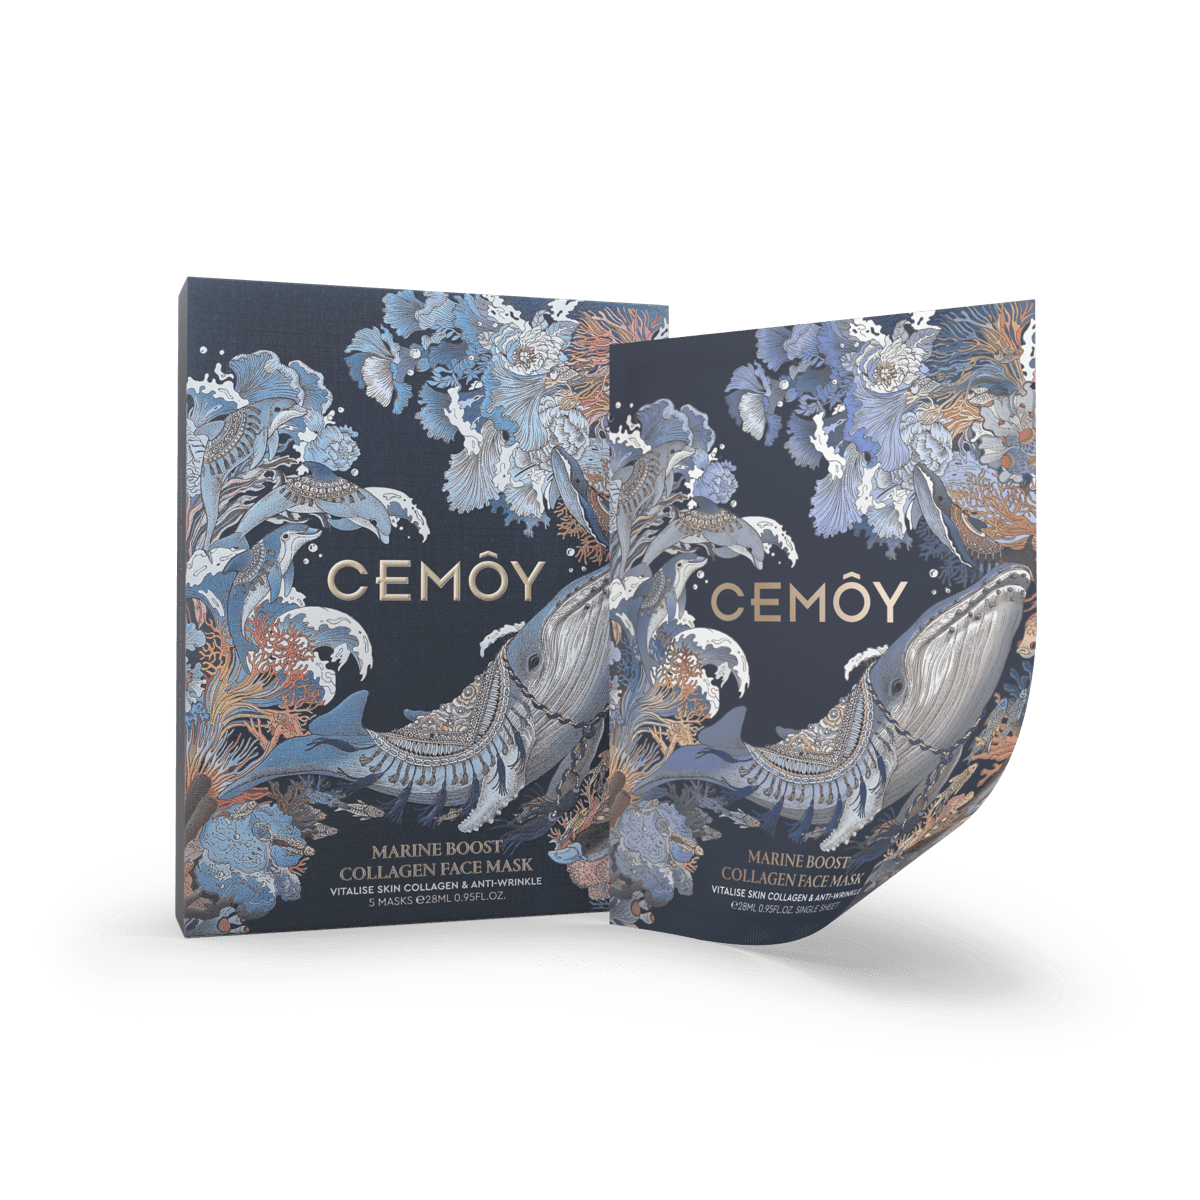 Cemoy Marina Boost Collagen Face Mask 5 Pack product shot